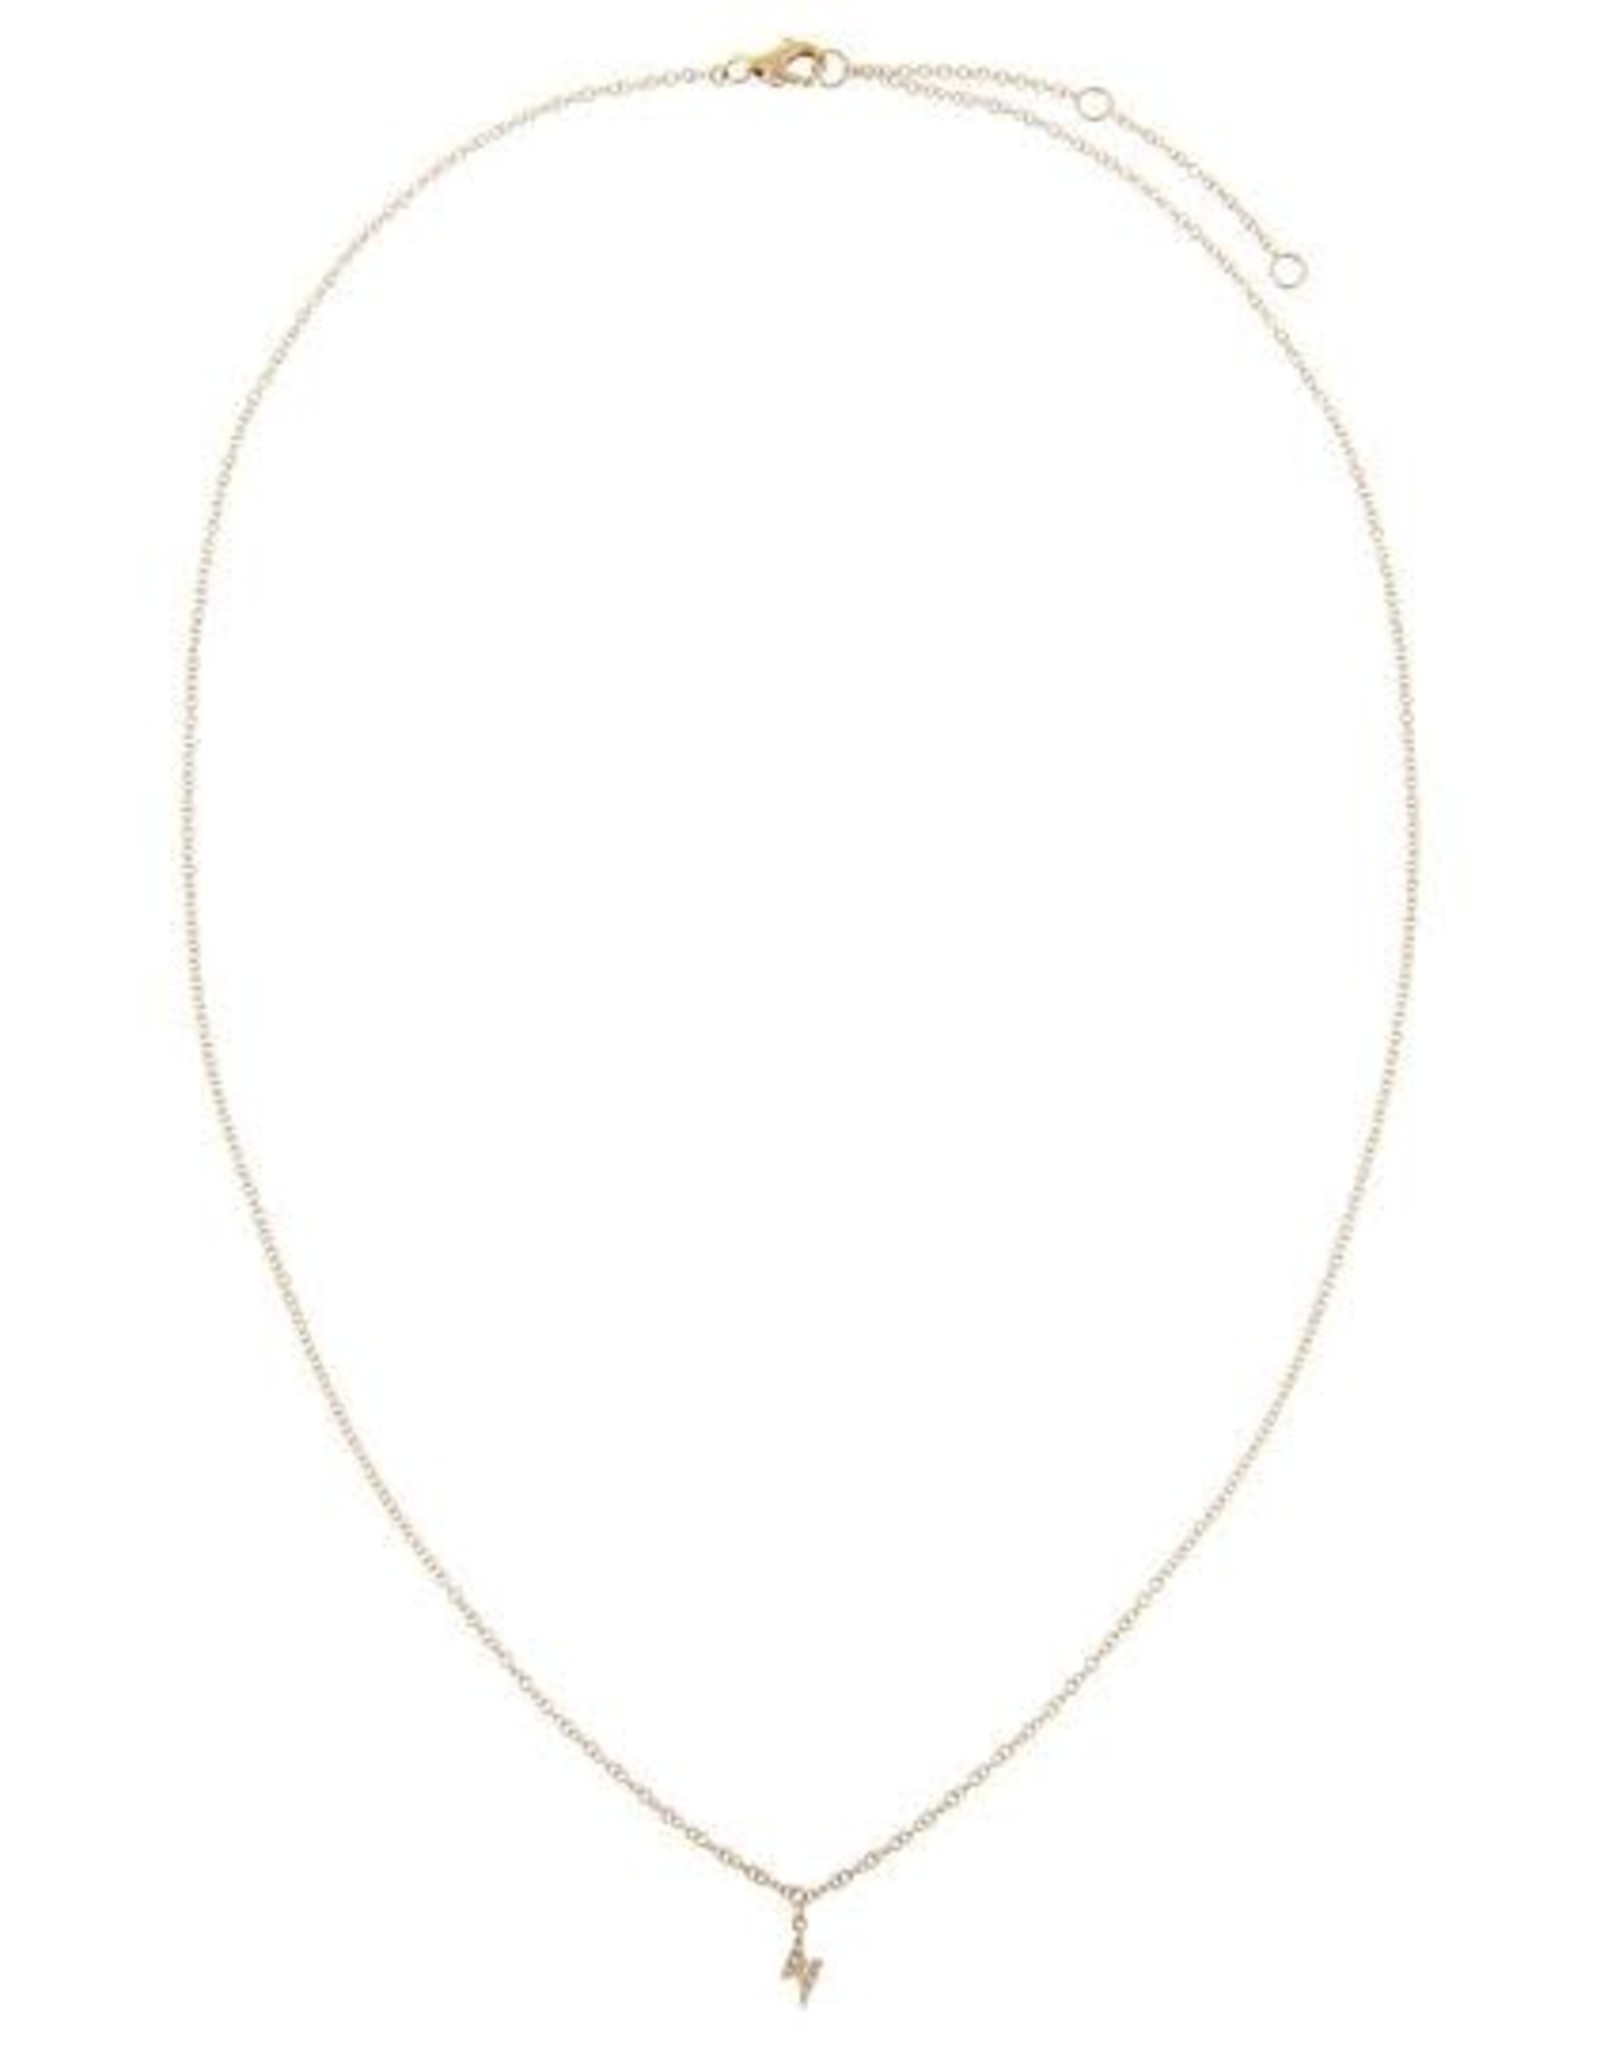 Adinas Diamond Tiny Lightning Bolt Necklace 14K